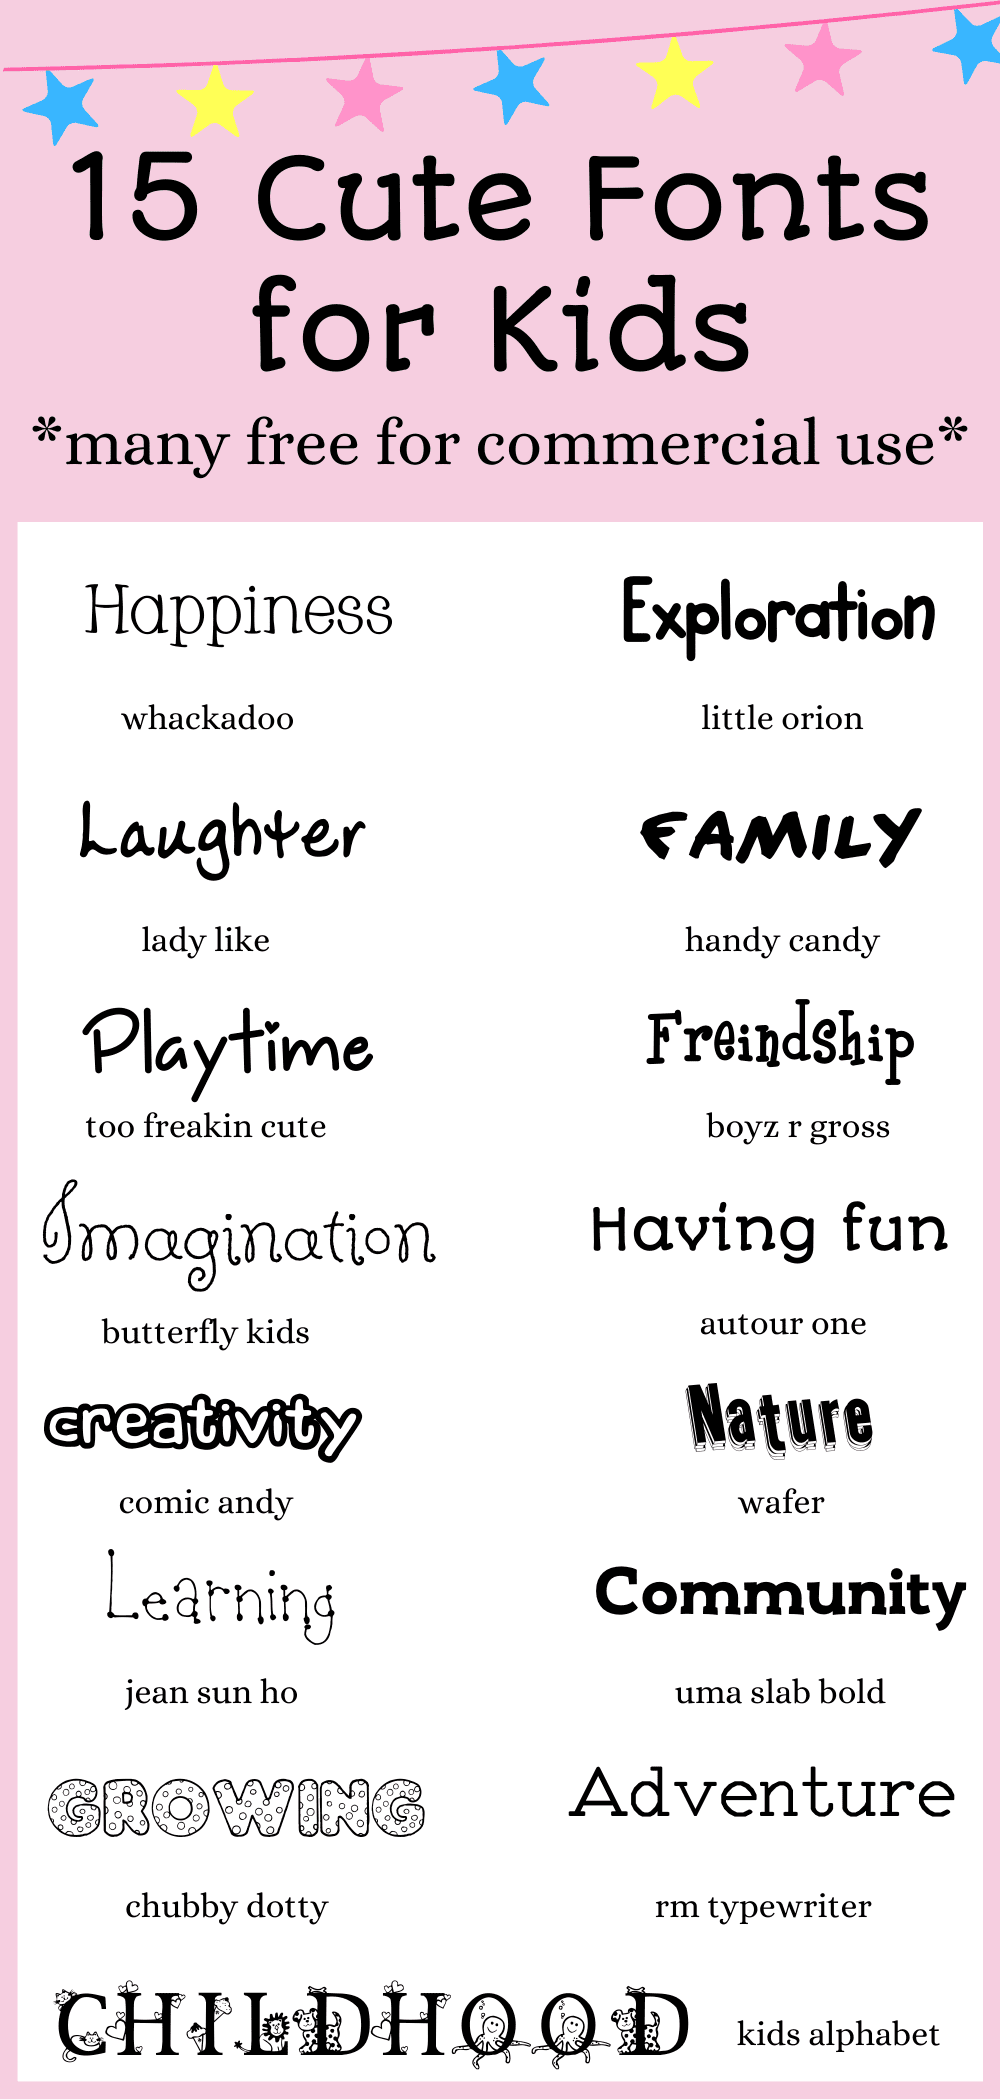 15 Cute Fonts For Kids {Free & Easy to Read!}